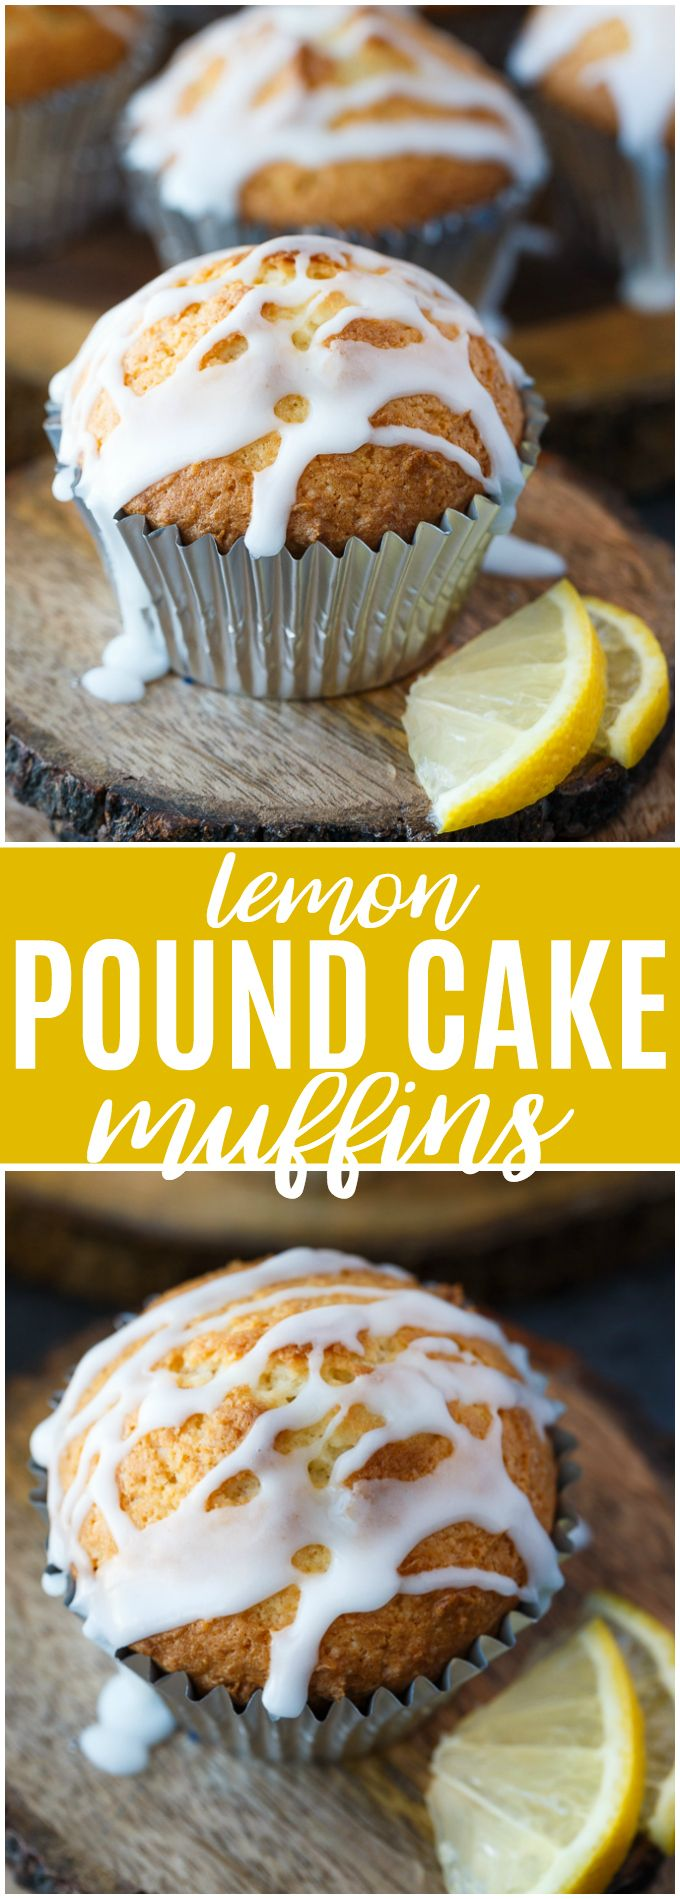 Lemon Pound Cake Muffins - The perfect accompaniment to your morning coffee! These muffins are dense and moist and drizzled with a sweet, tangy lemon glaze.